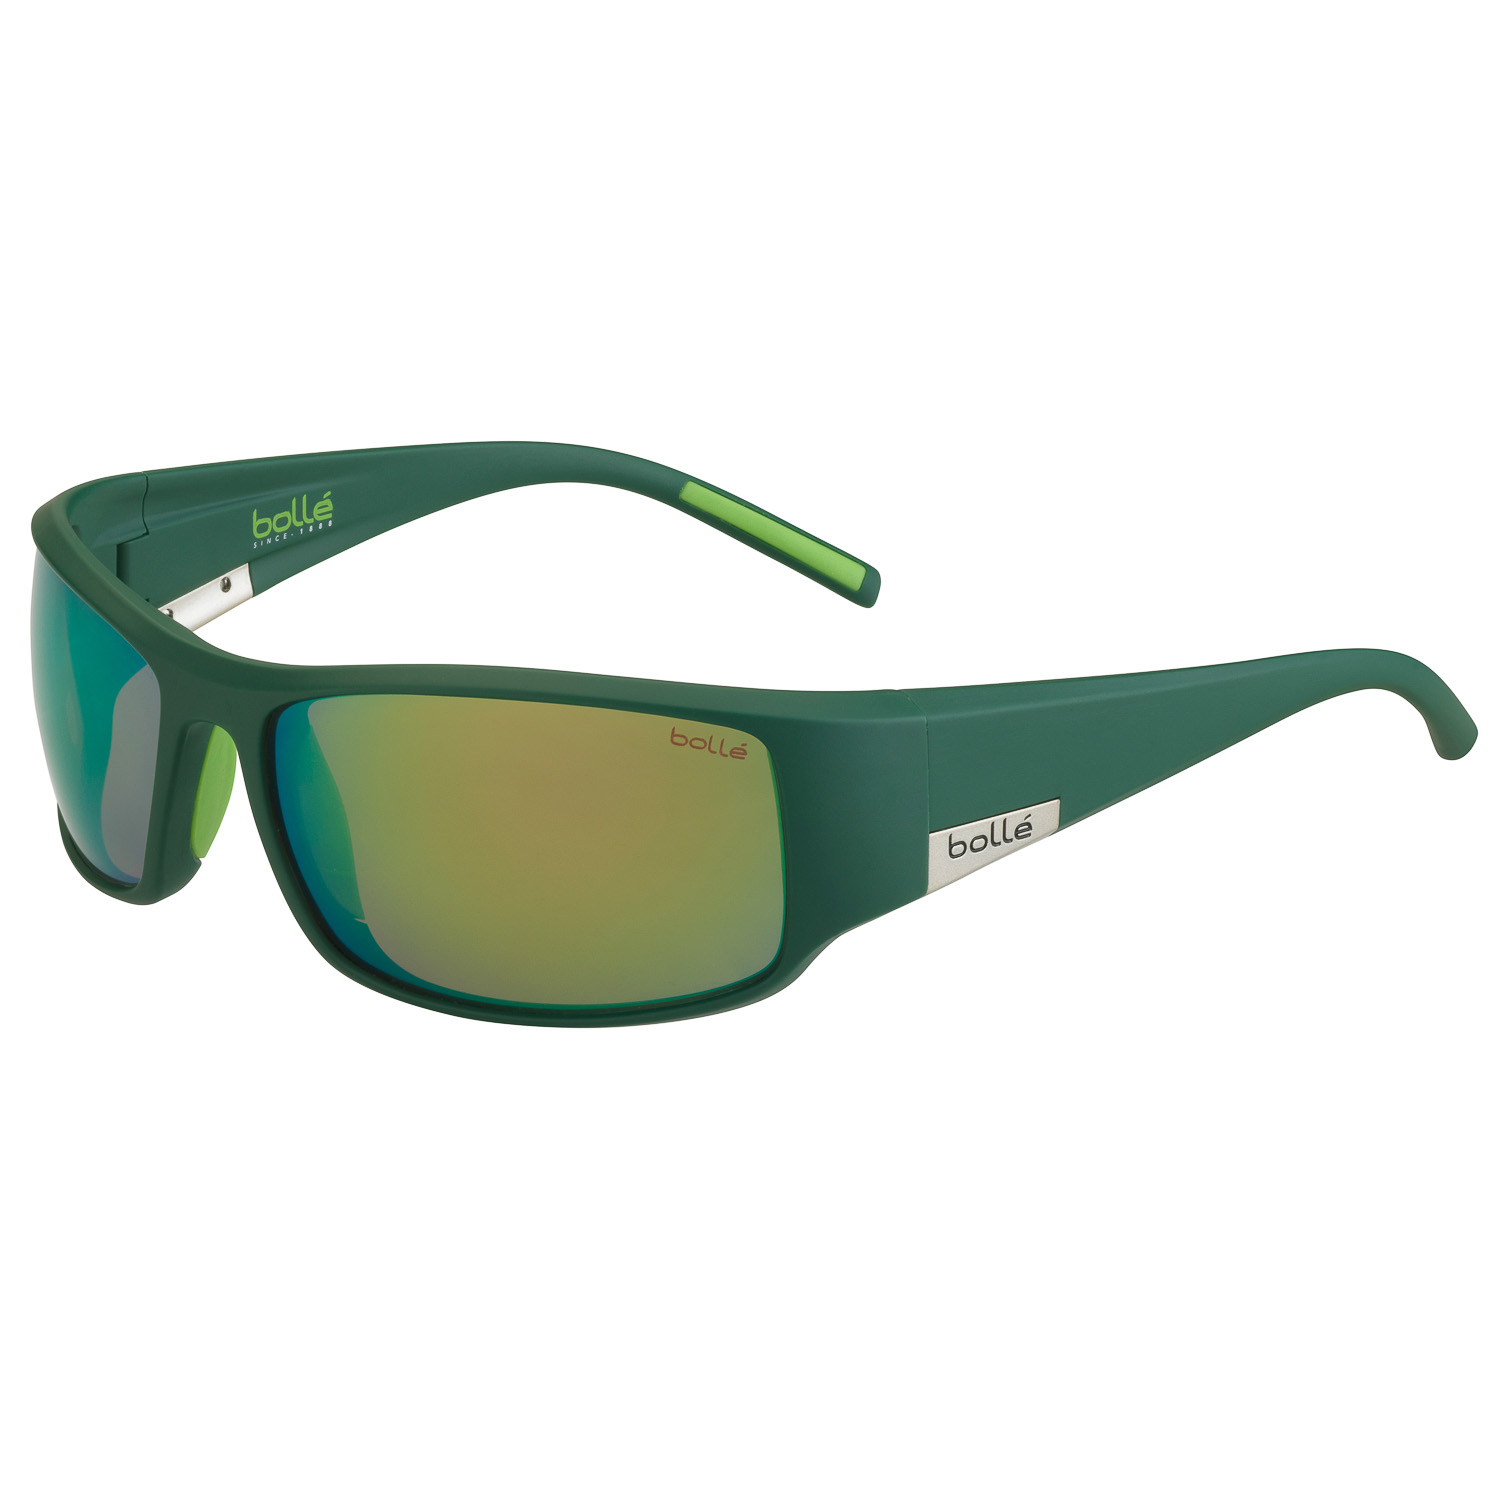 Bolle Sunglasses 12422 King Green